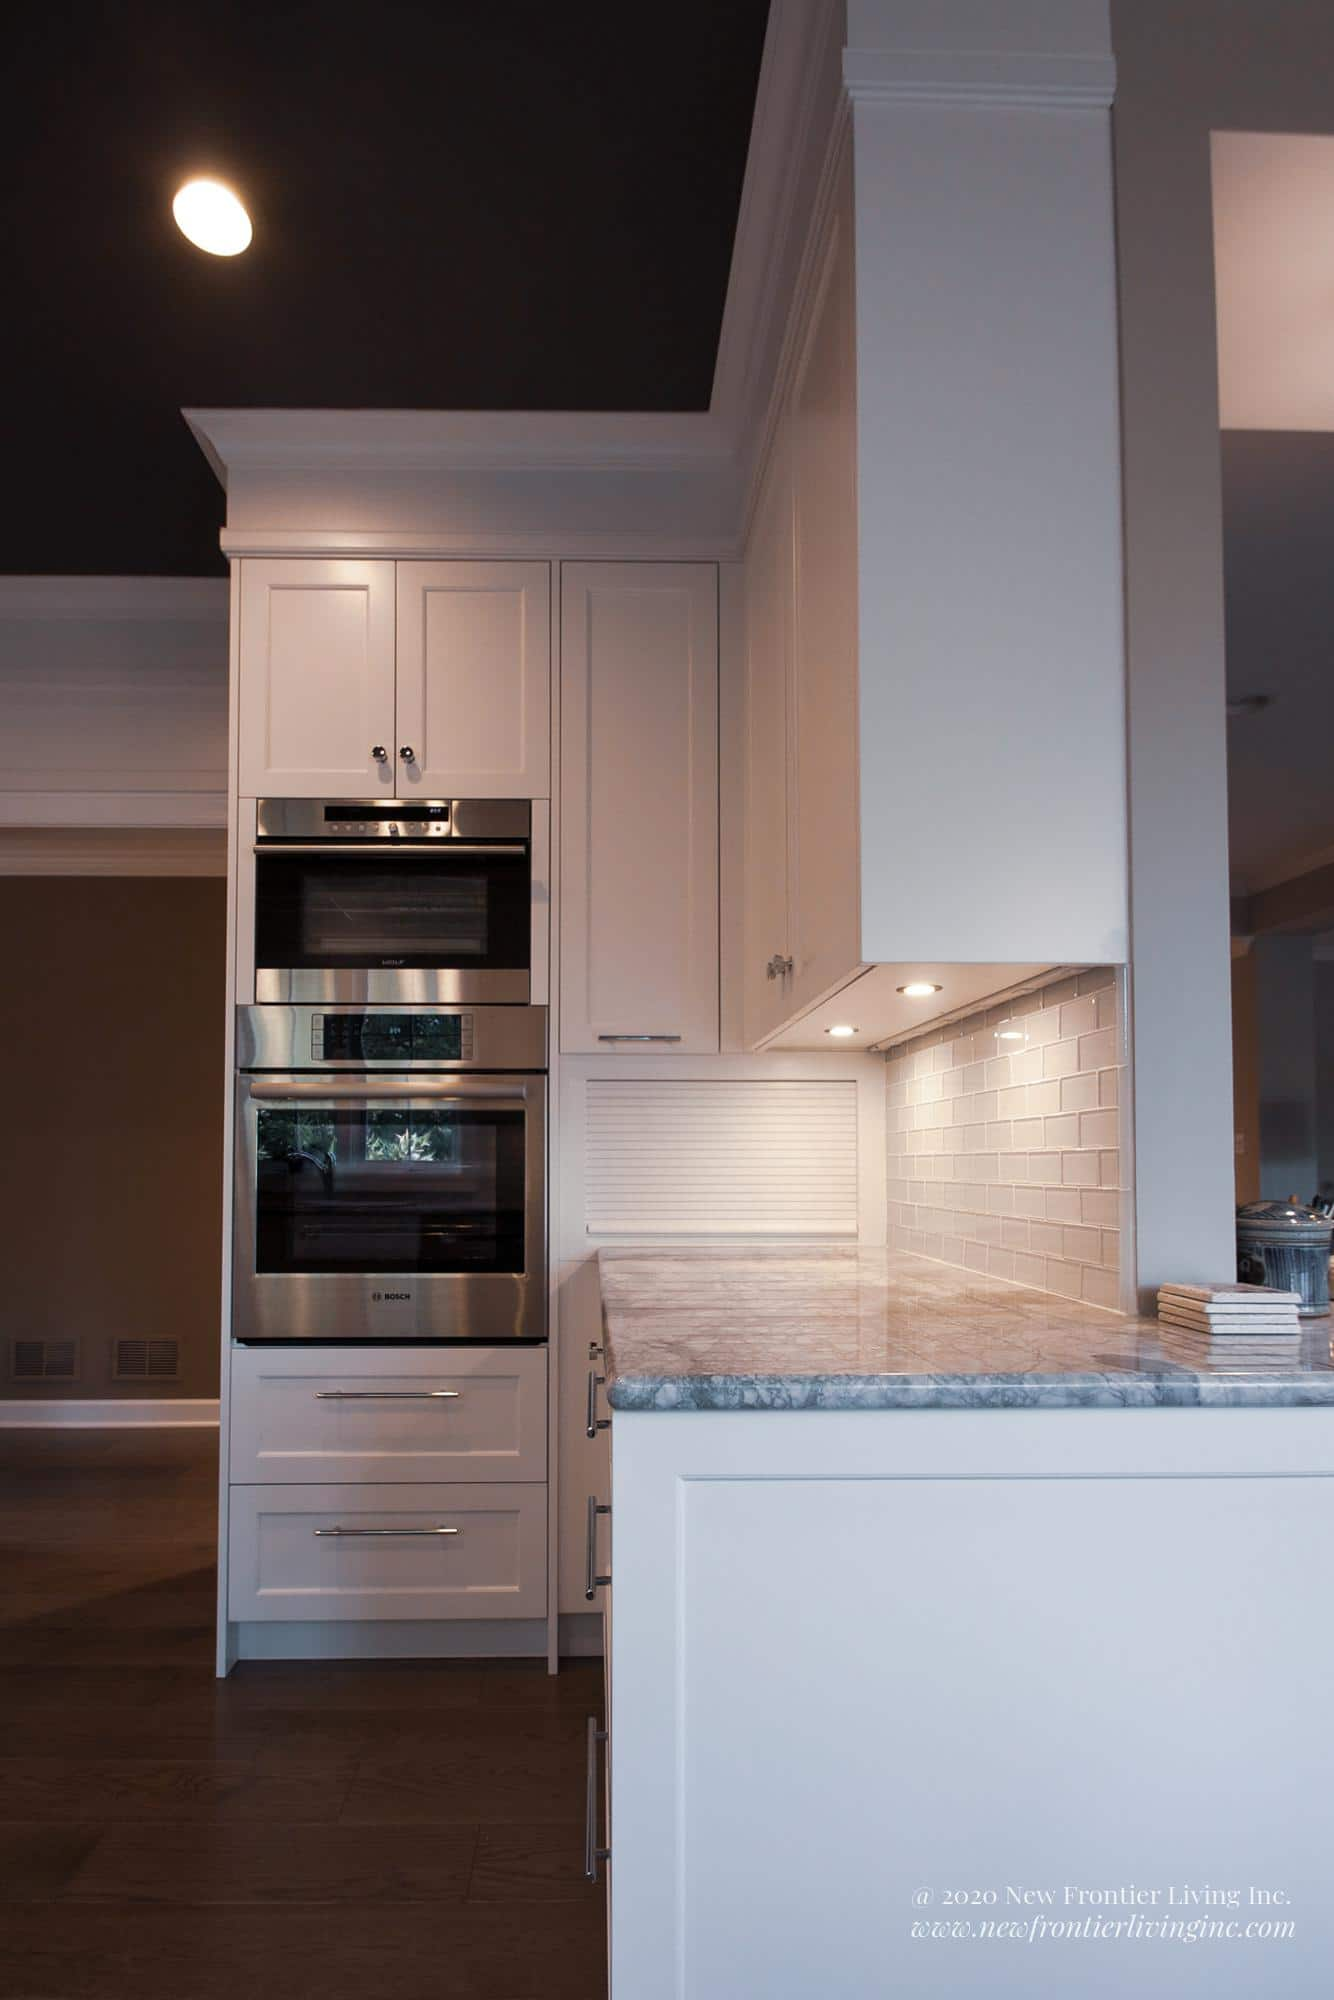 White kitchen cabinetry with handles, oven and microwave front